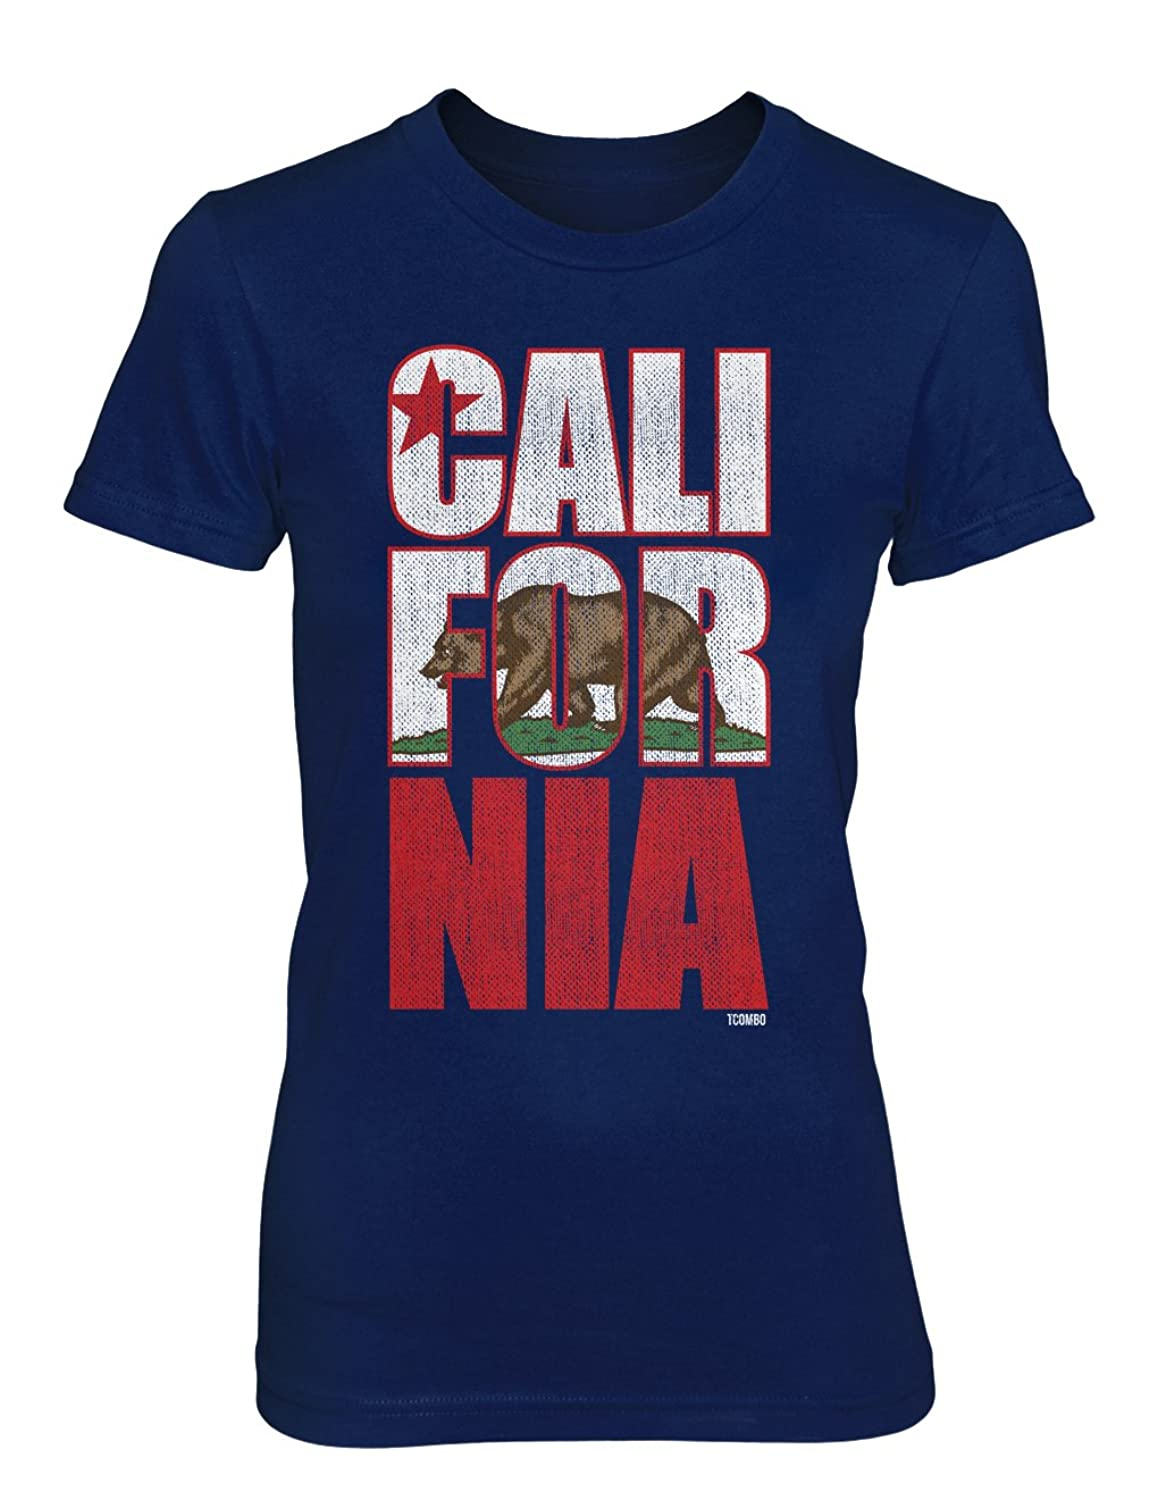 Oversize California Republic - Cali Bear GIRLS / JUNIORS T-shirt насос franklin electric